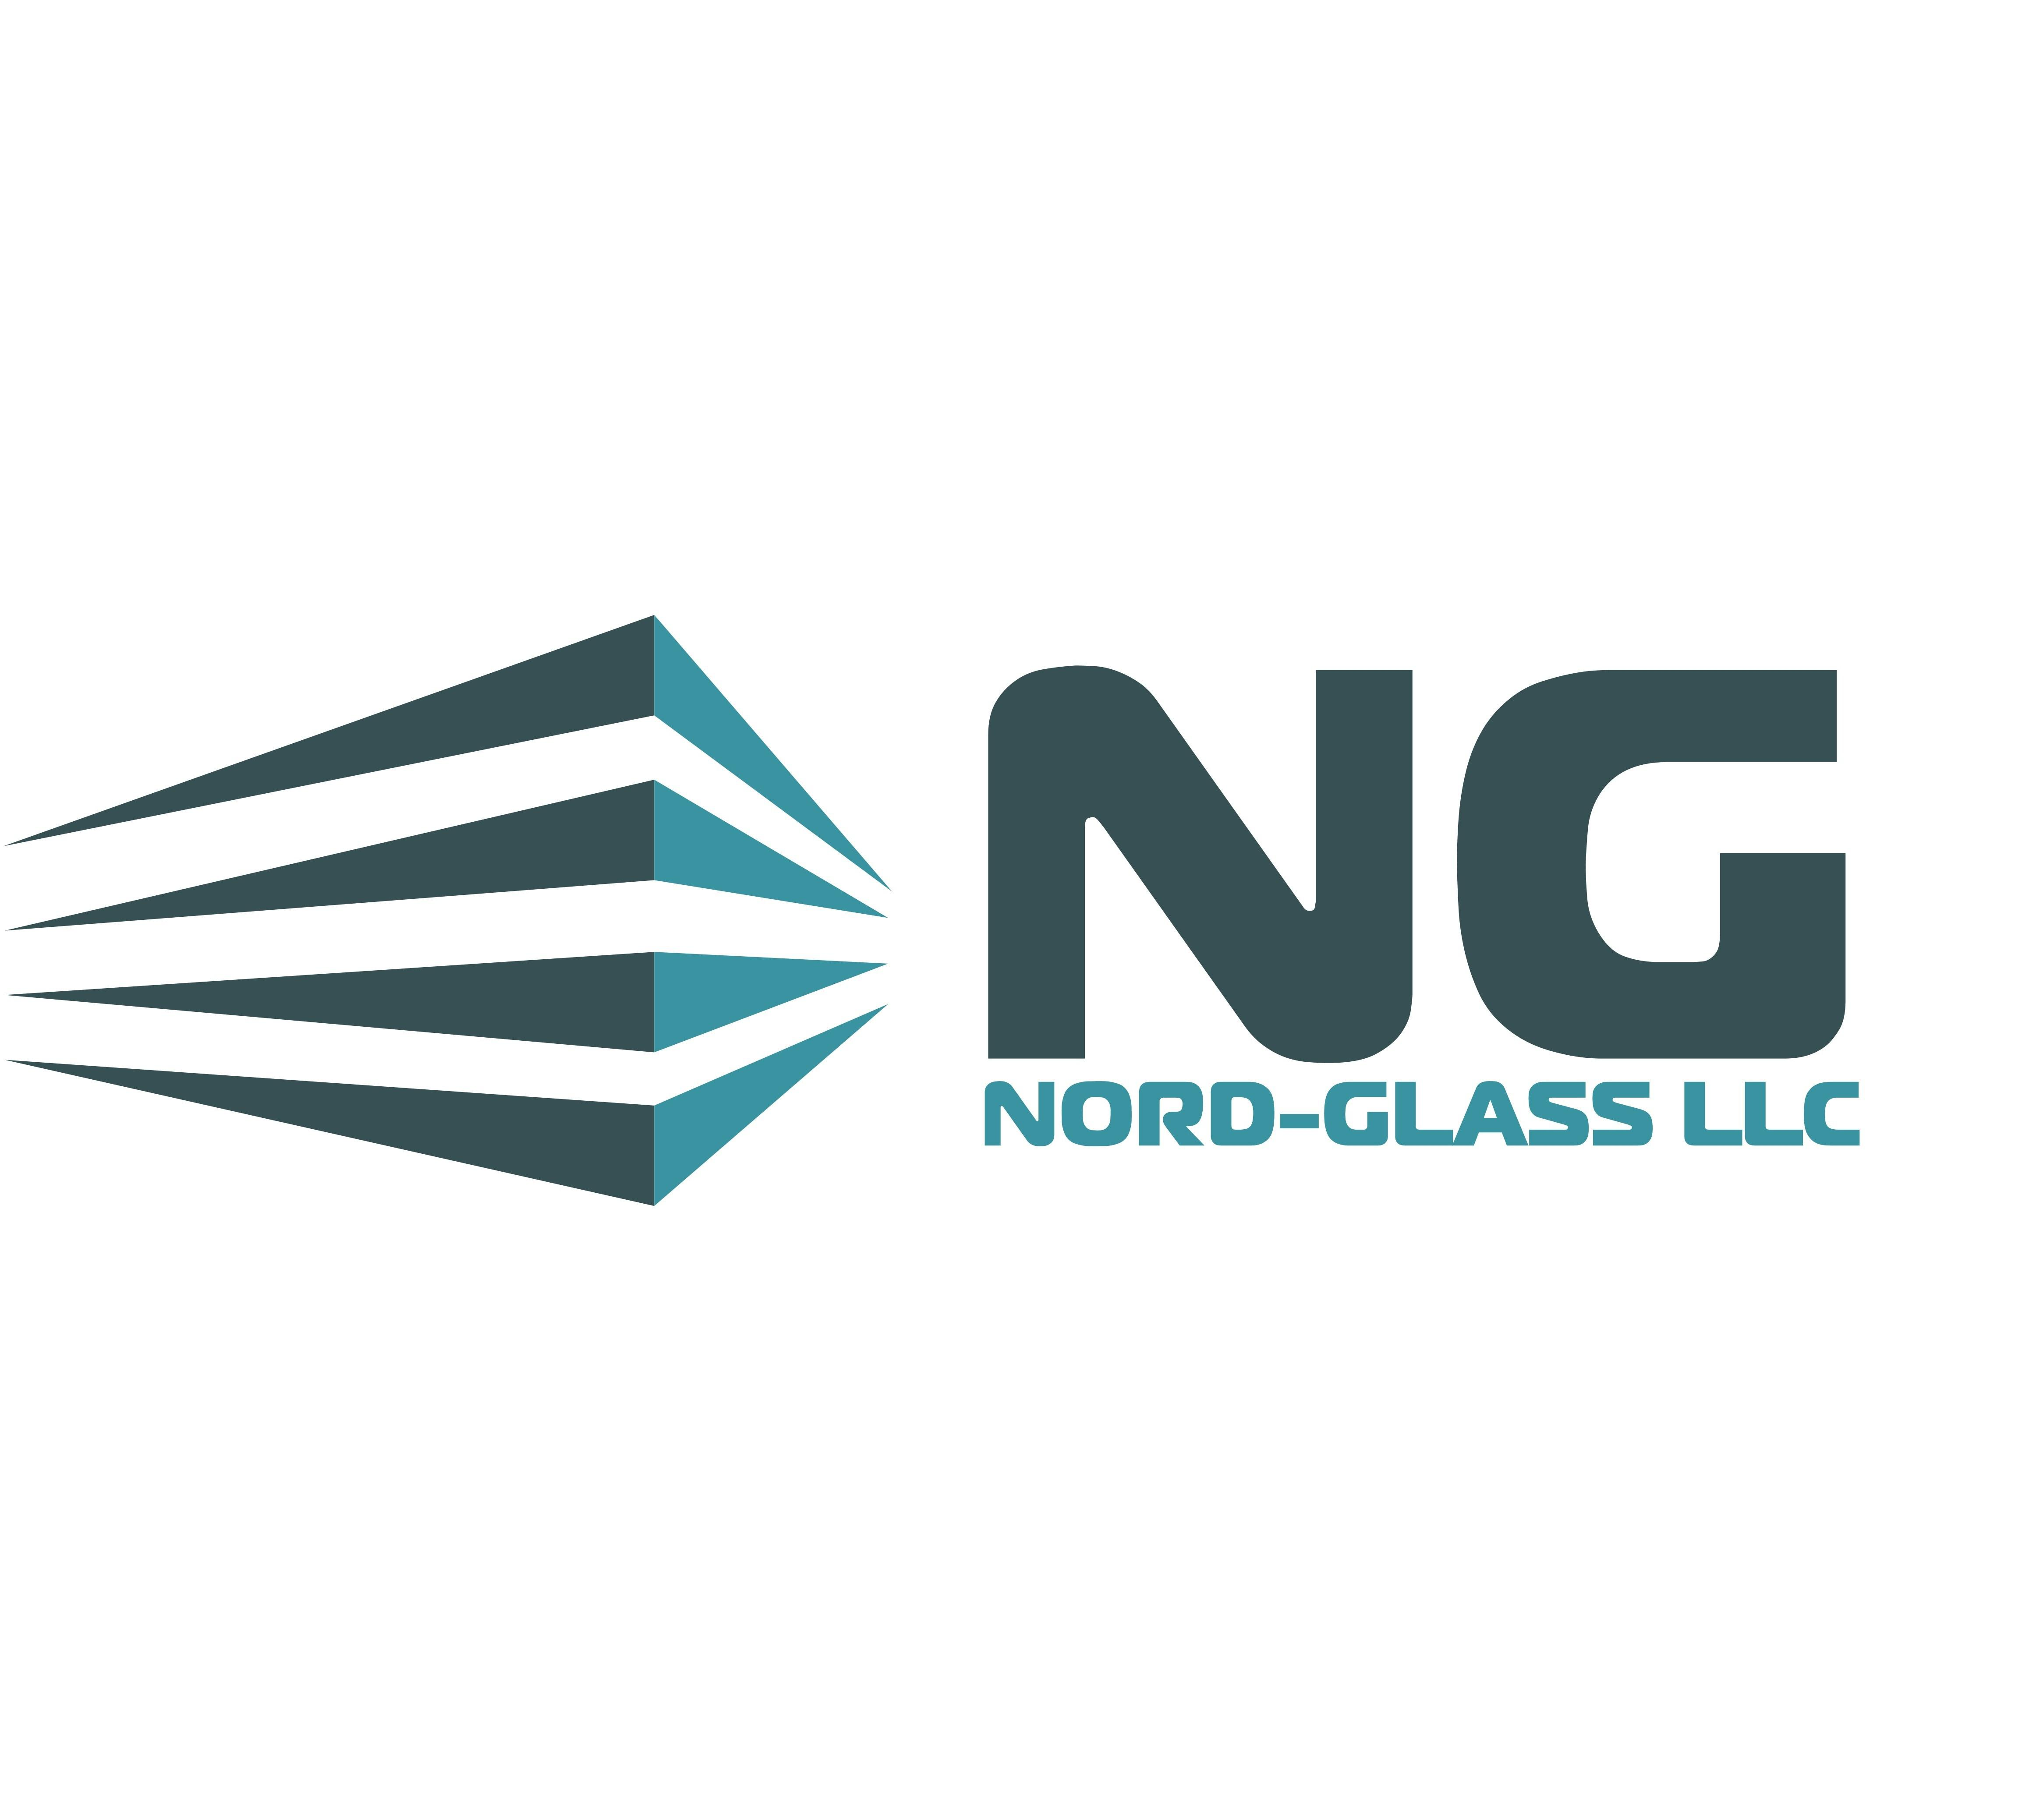 Nord Glass llc Logo